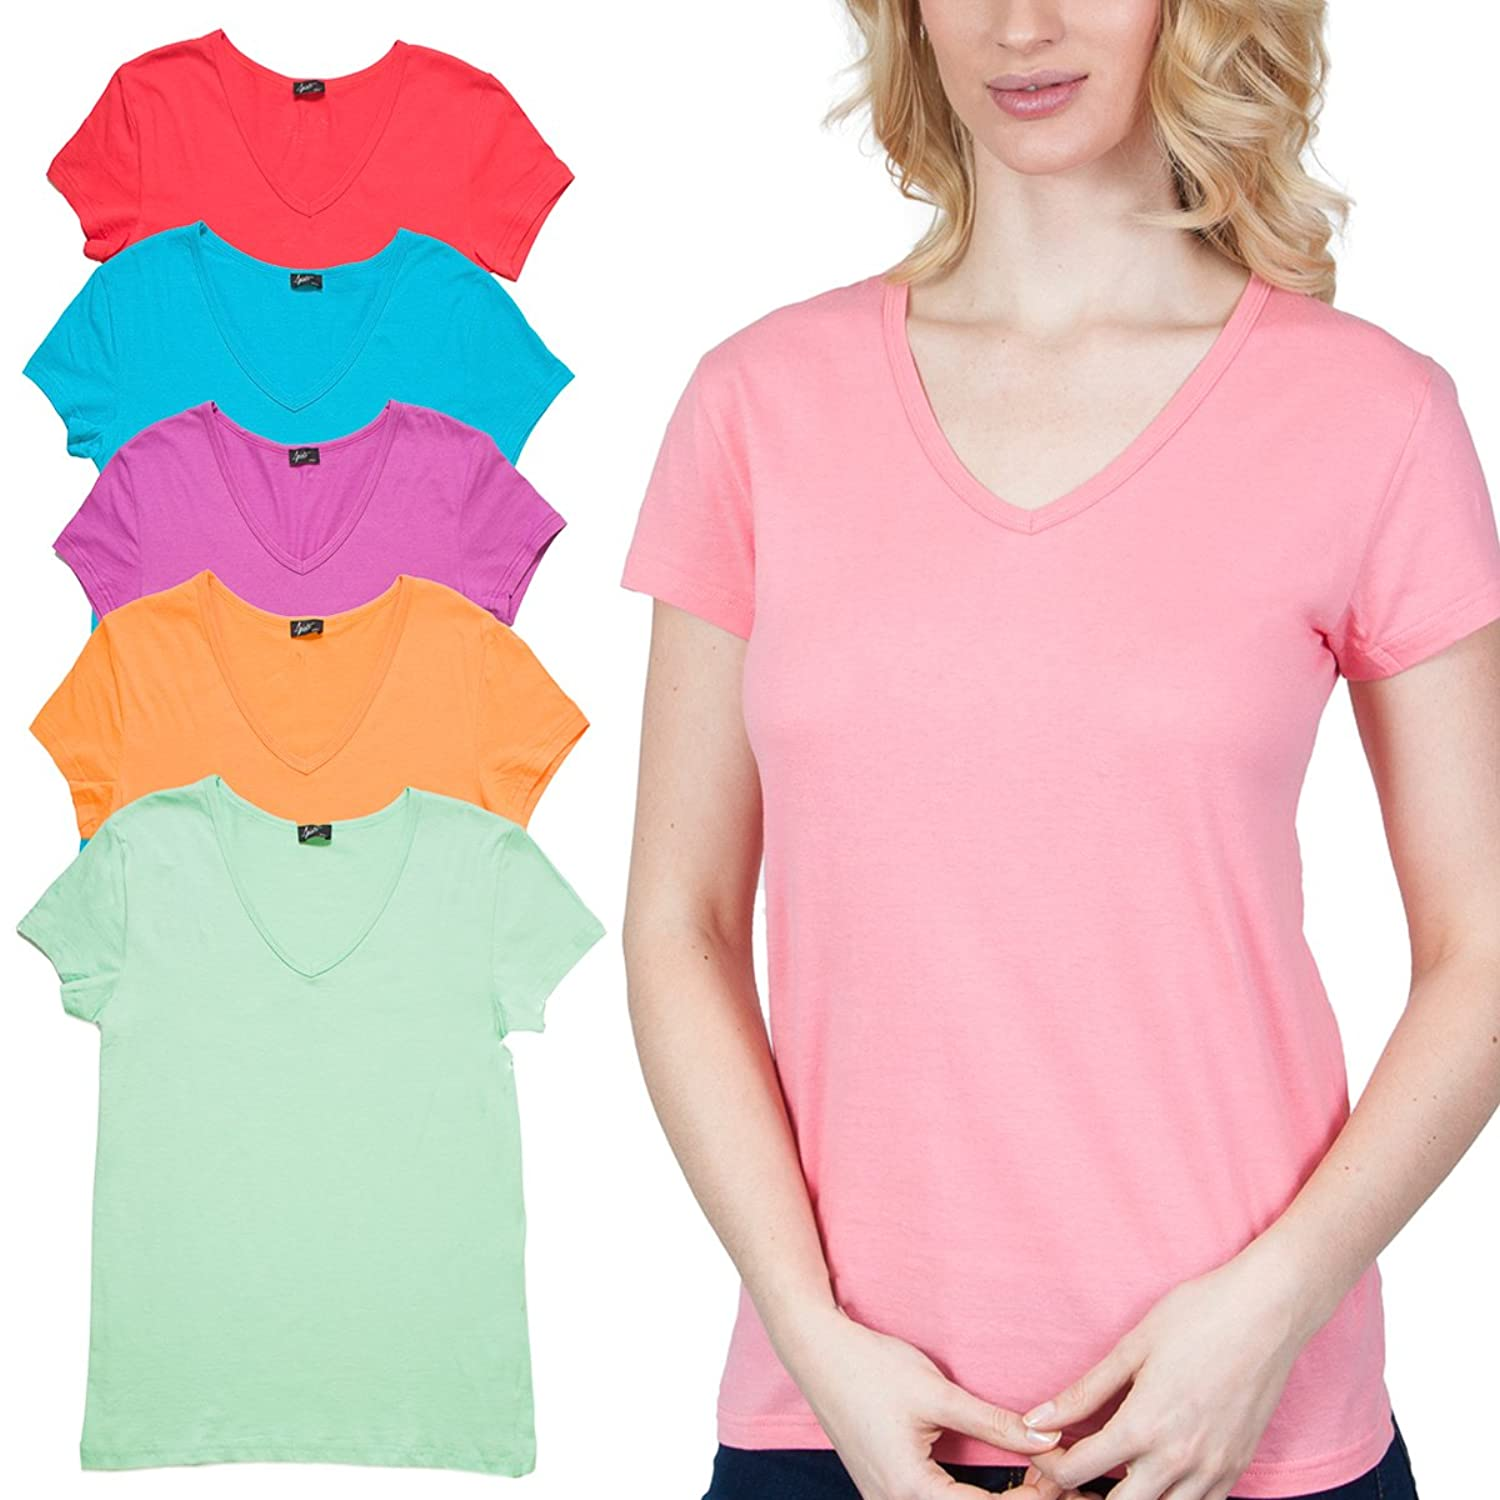 6 Pack Women's V-Neck Short Sleeve T-Shirts Cotton Pastel Assorted Colors Basic Tee